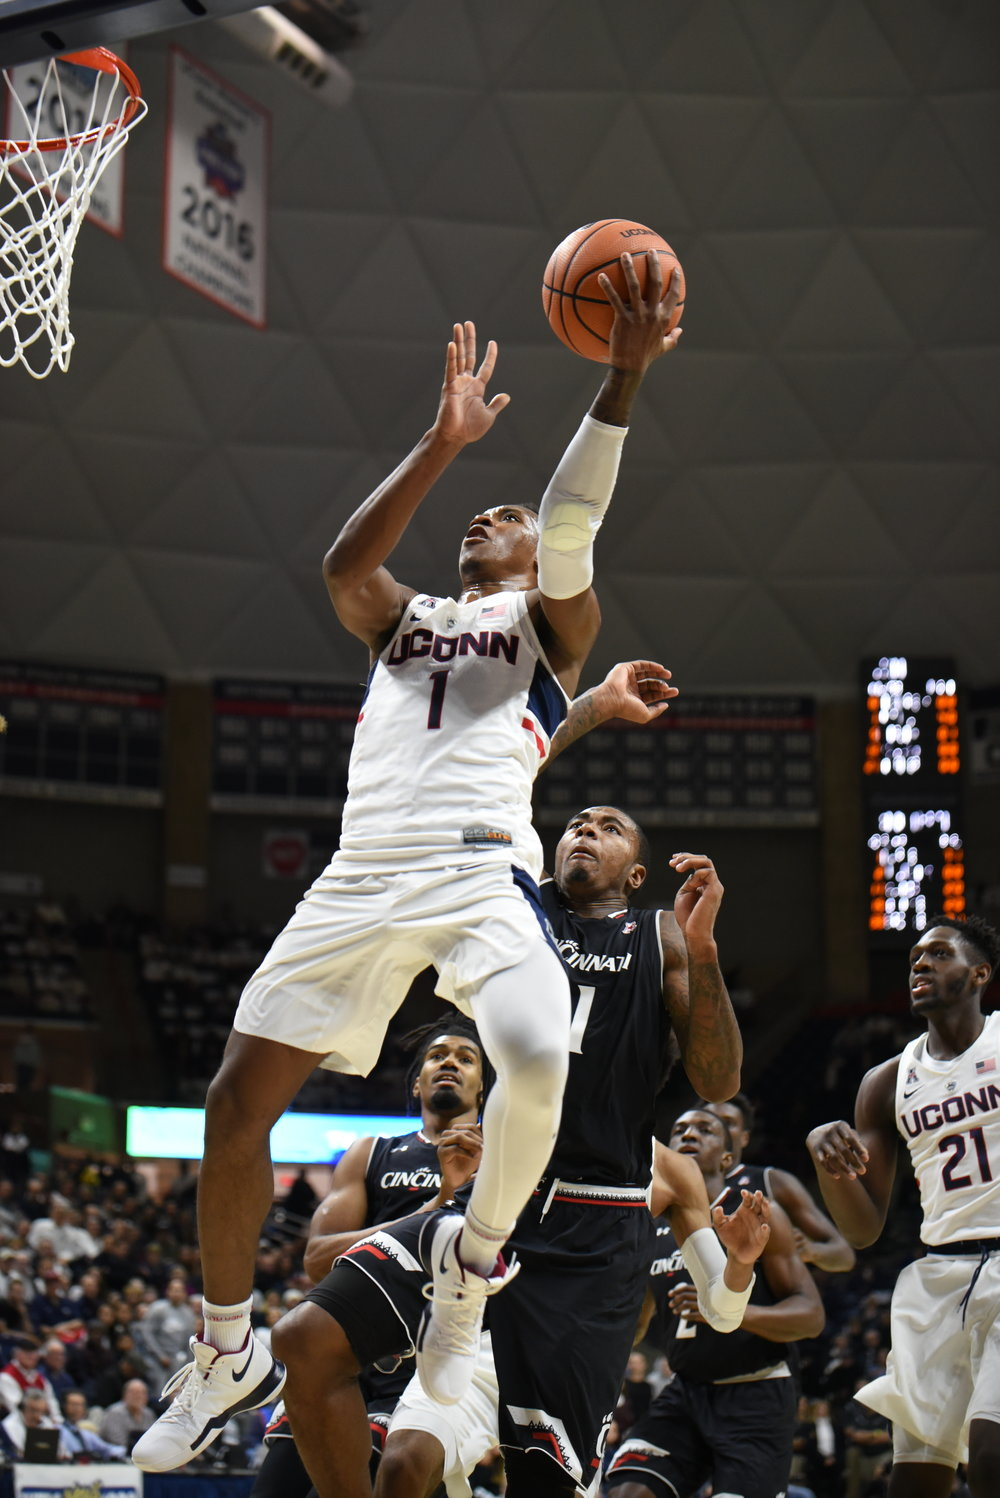 Christian Vital rises for a layup in Saturday's game. (Charlotte Lao/The Daily Campus)